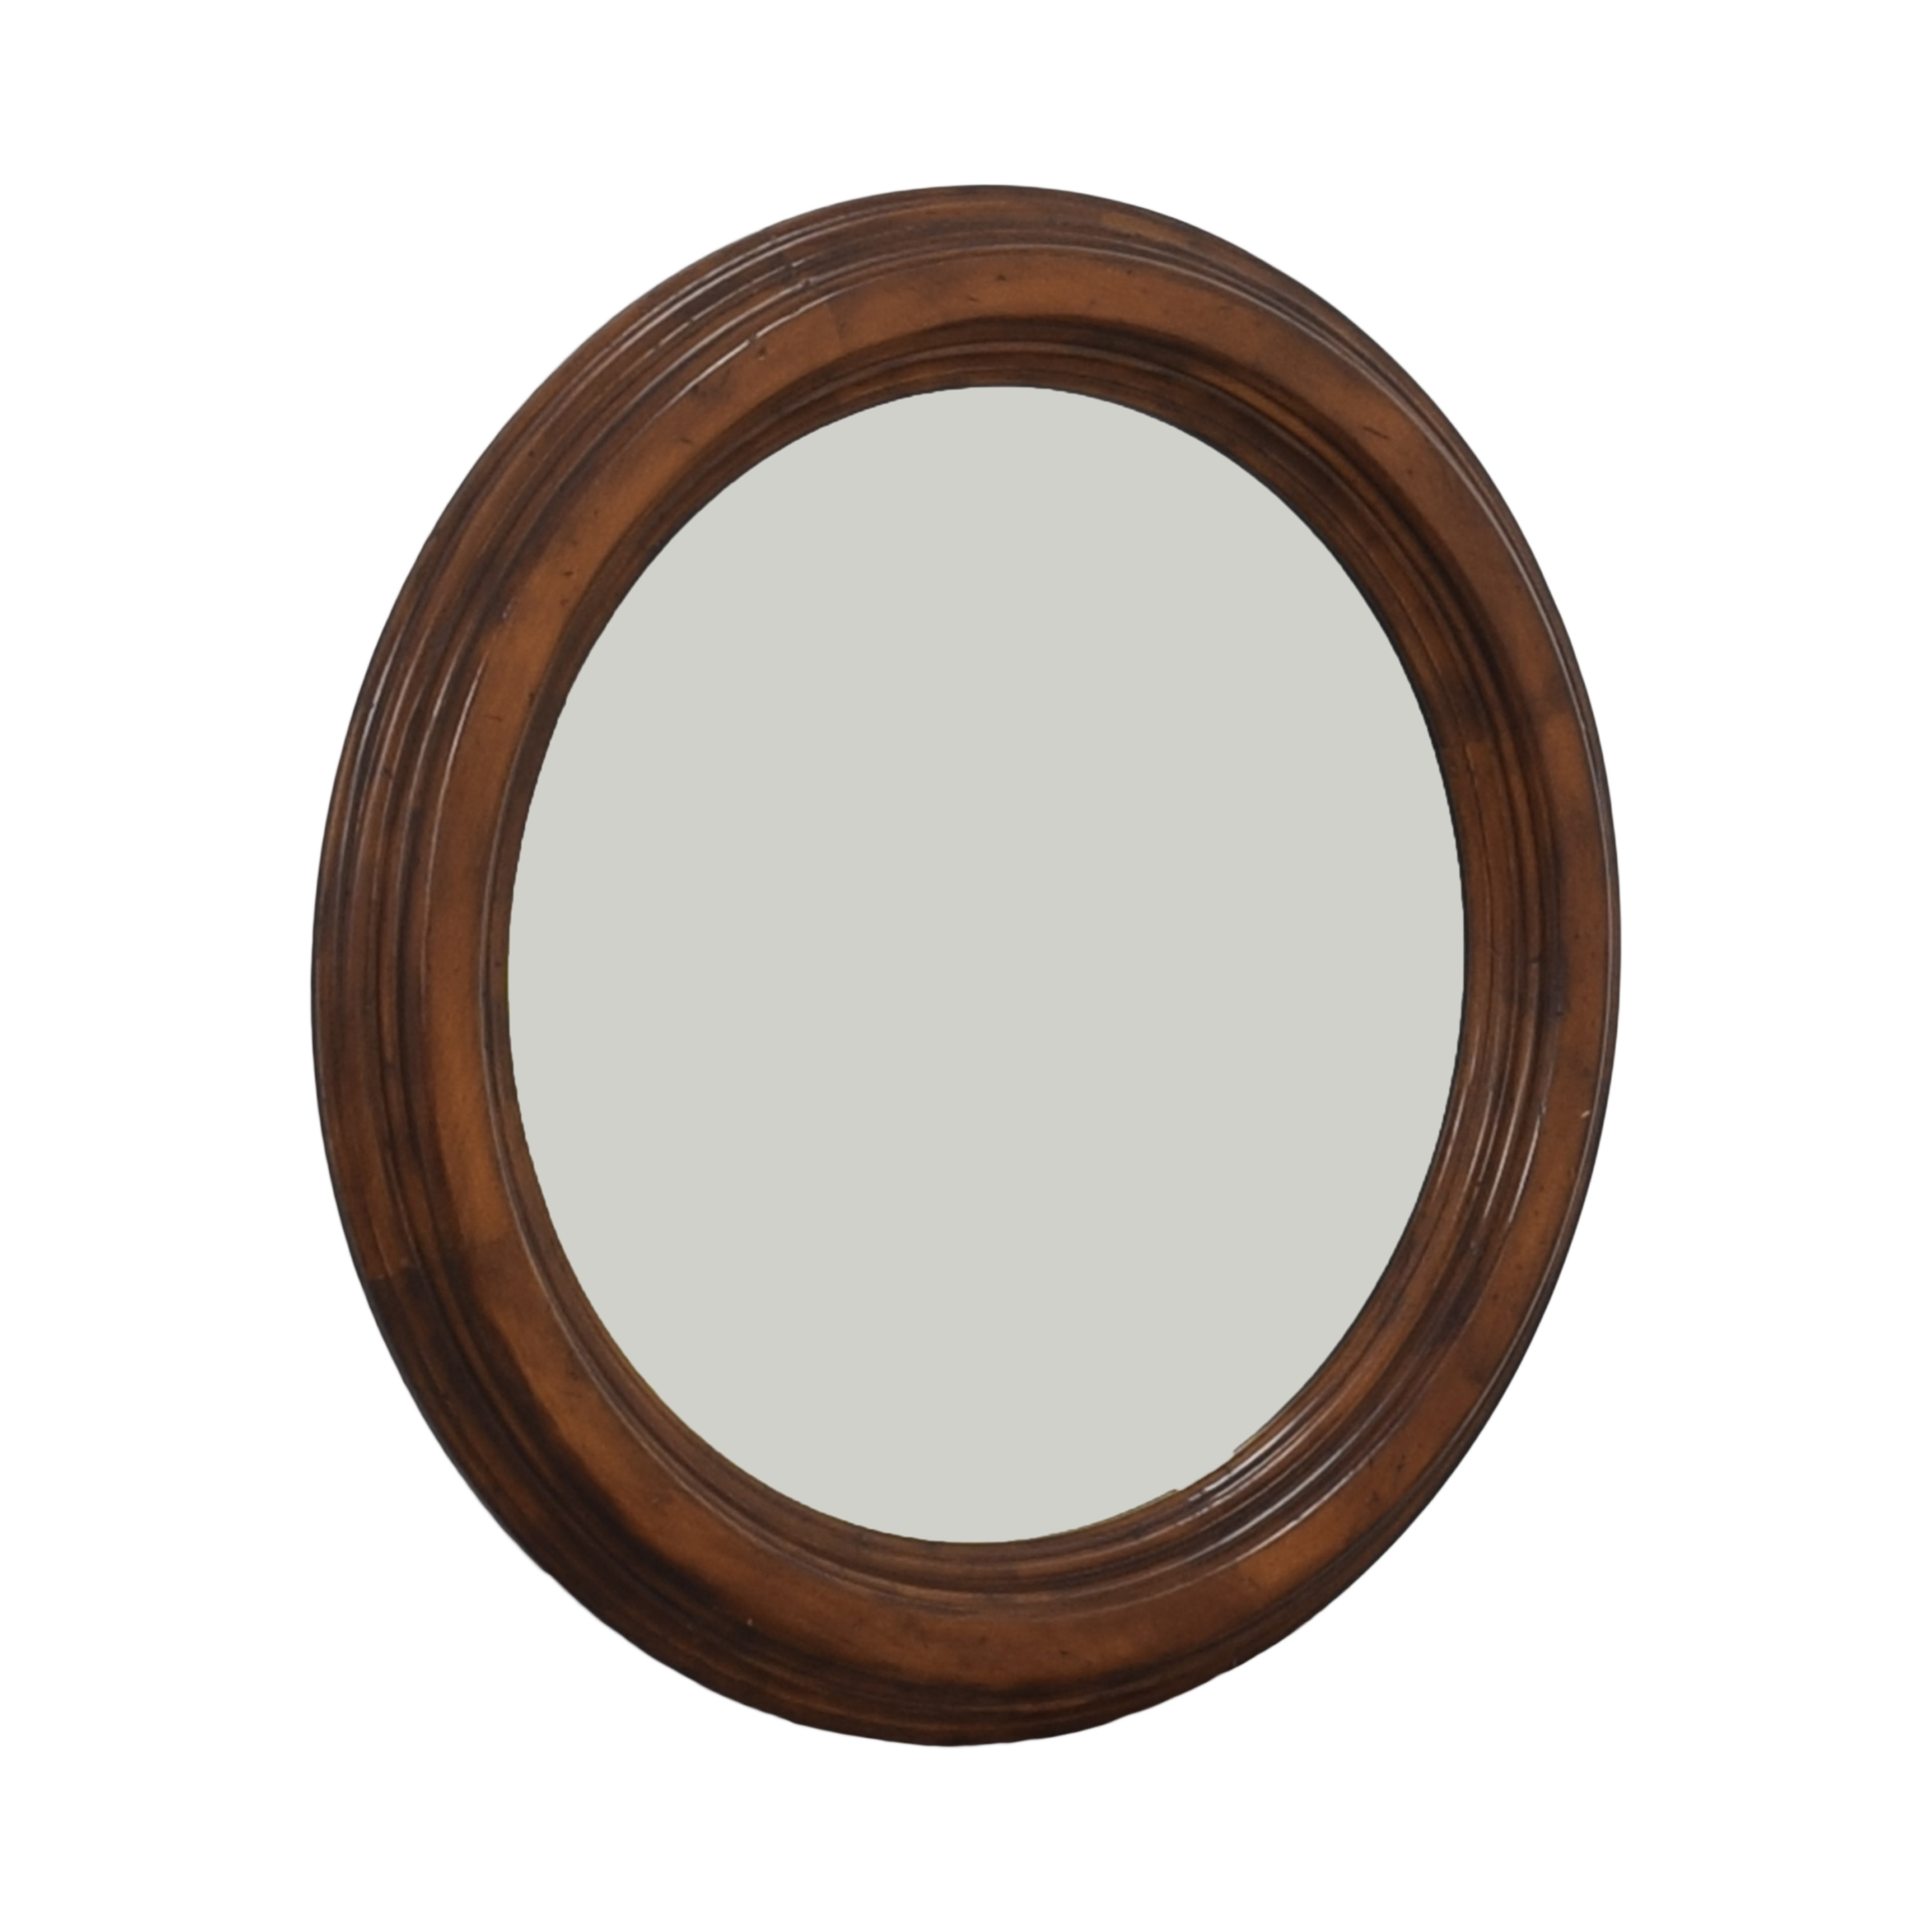 buy Round Frame Wall Mirror